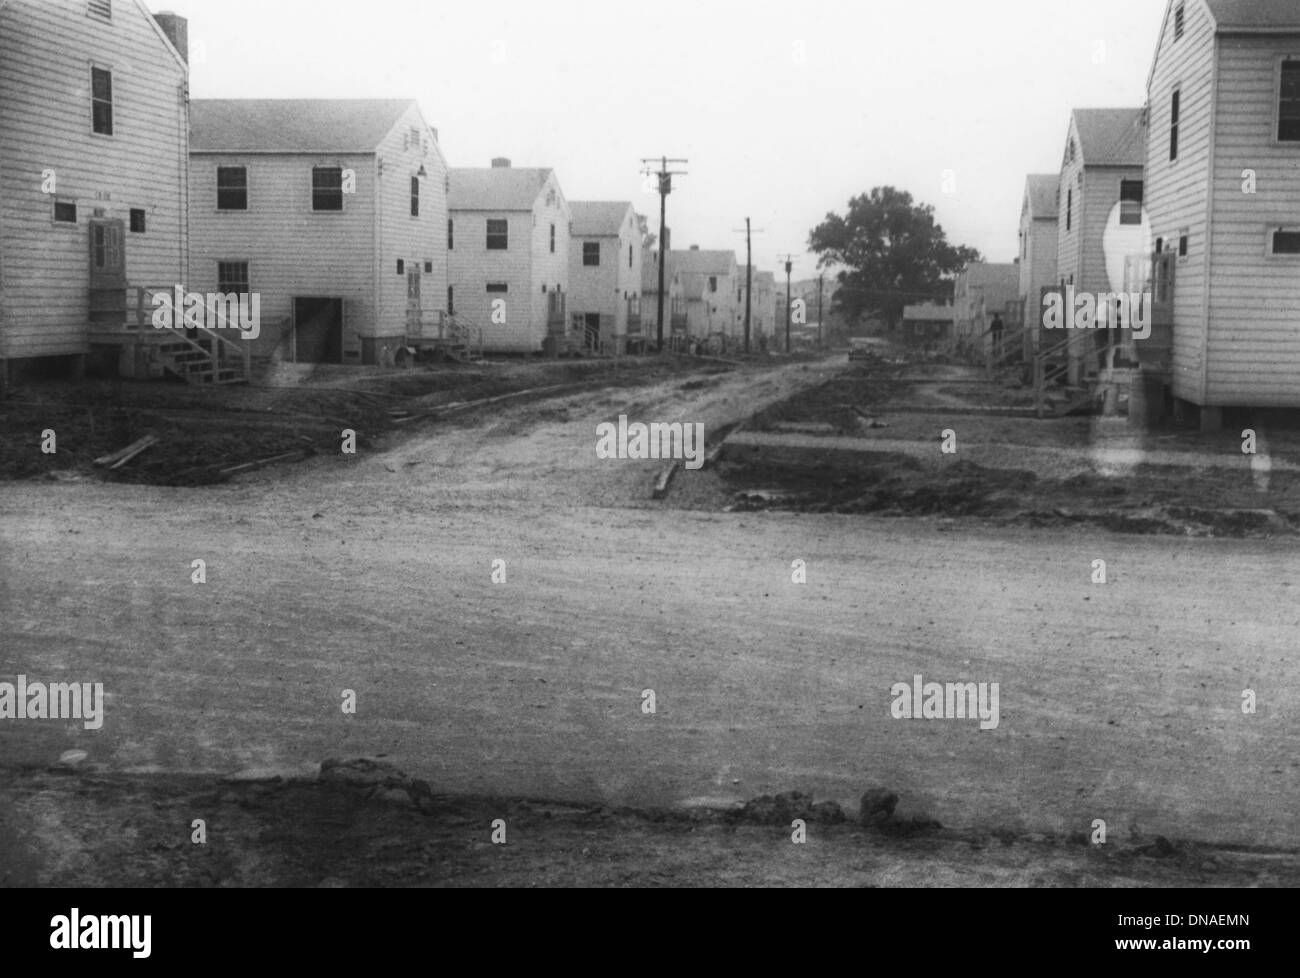 Military Buildings Along Dirt Road, WWII, 2nd Battalion, 389th Infantry, US Army Military Base Indiana, USA, 1942 - Stock Image